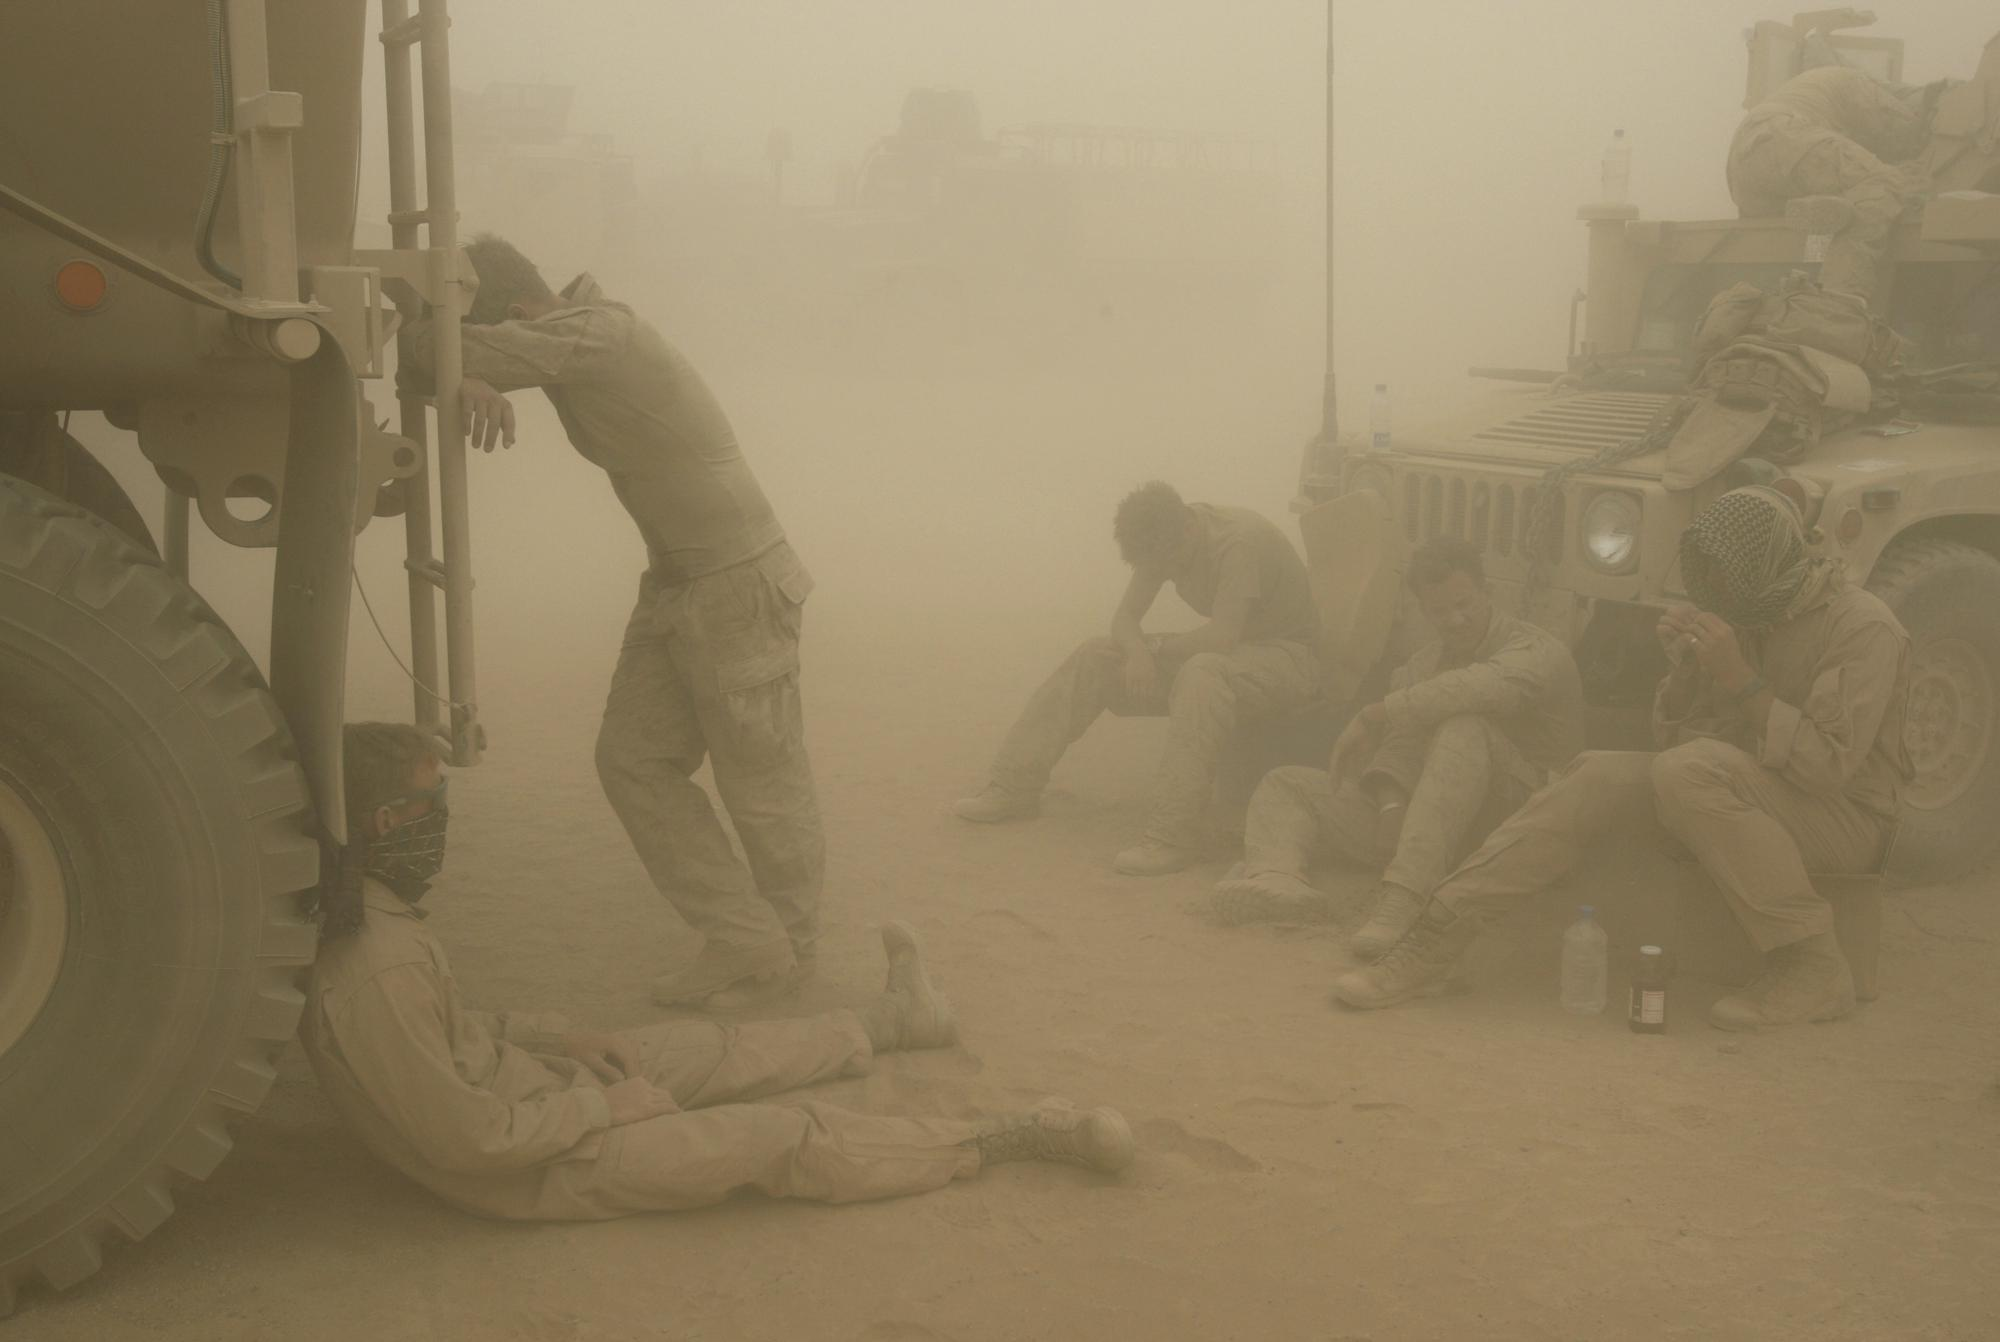 FILE - In this Wednesday, May 7, 2008 file photo, U.S. Marines from the 24th Marine Expeditionary Unit try to take shelter from a sand storm at forward operating base Dwyer in the Helmand province of southern Afghanistan. (AP Photo/David Guttenfelder, File)